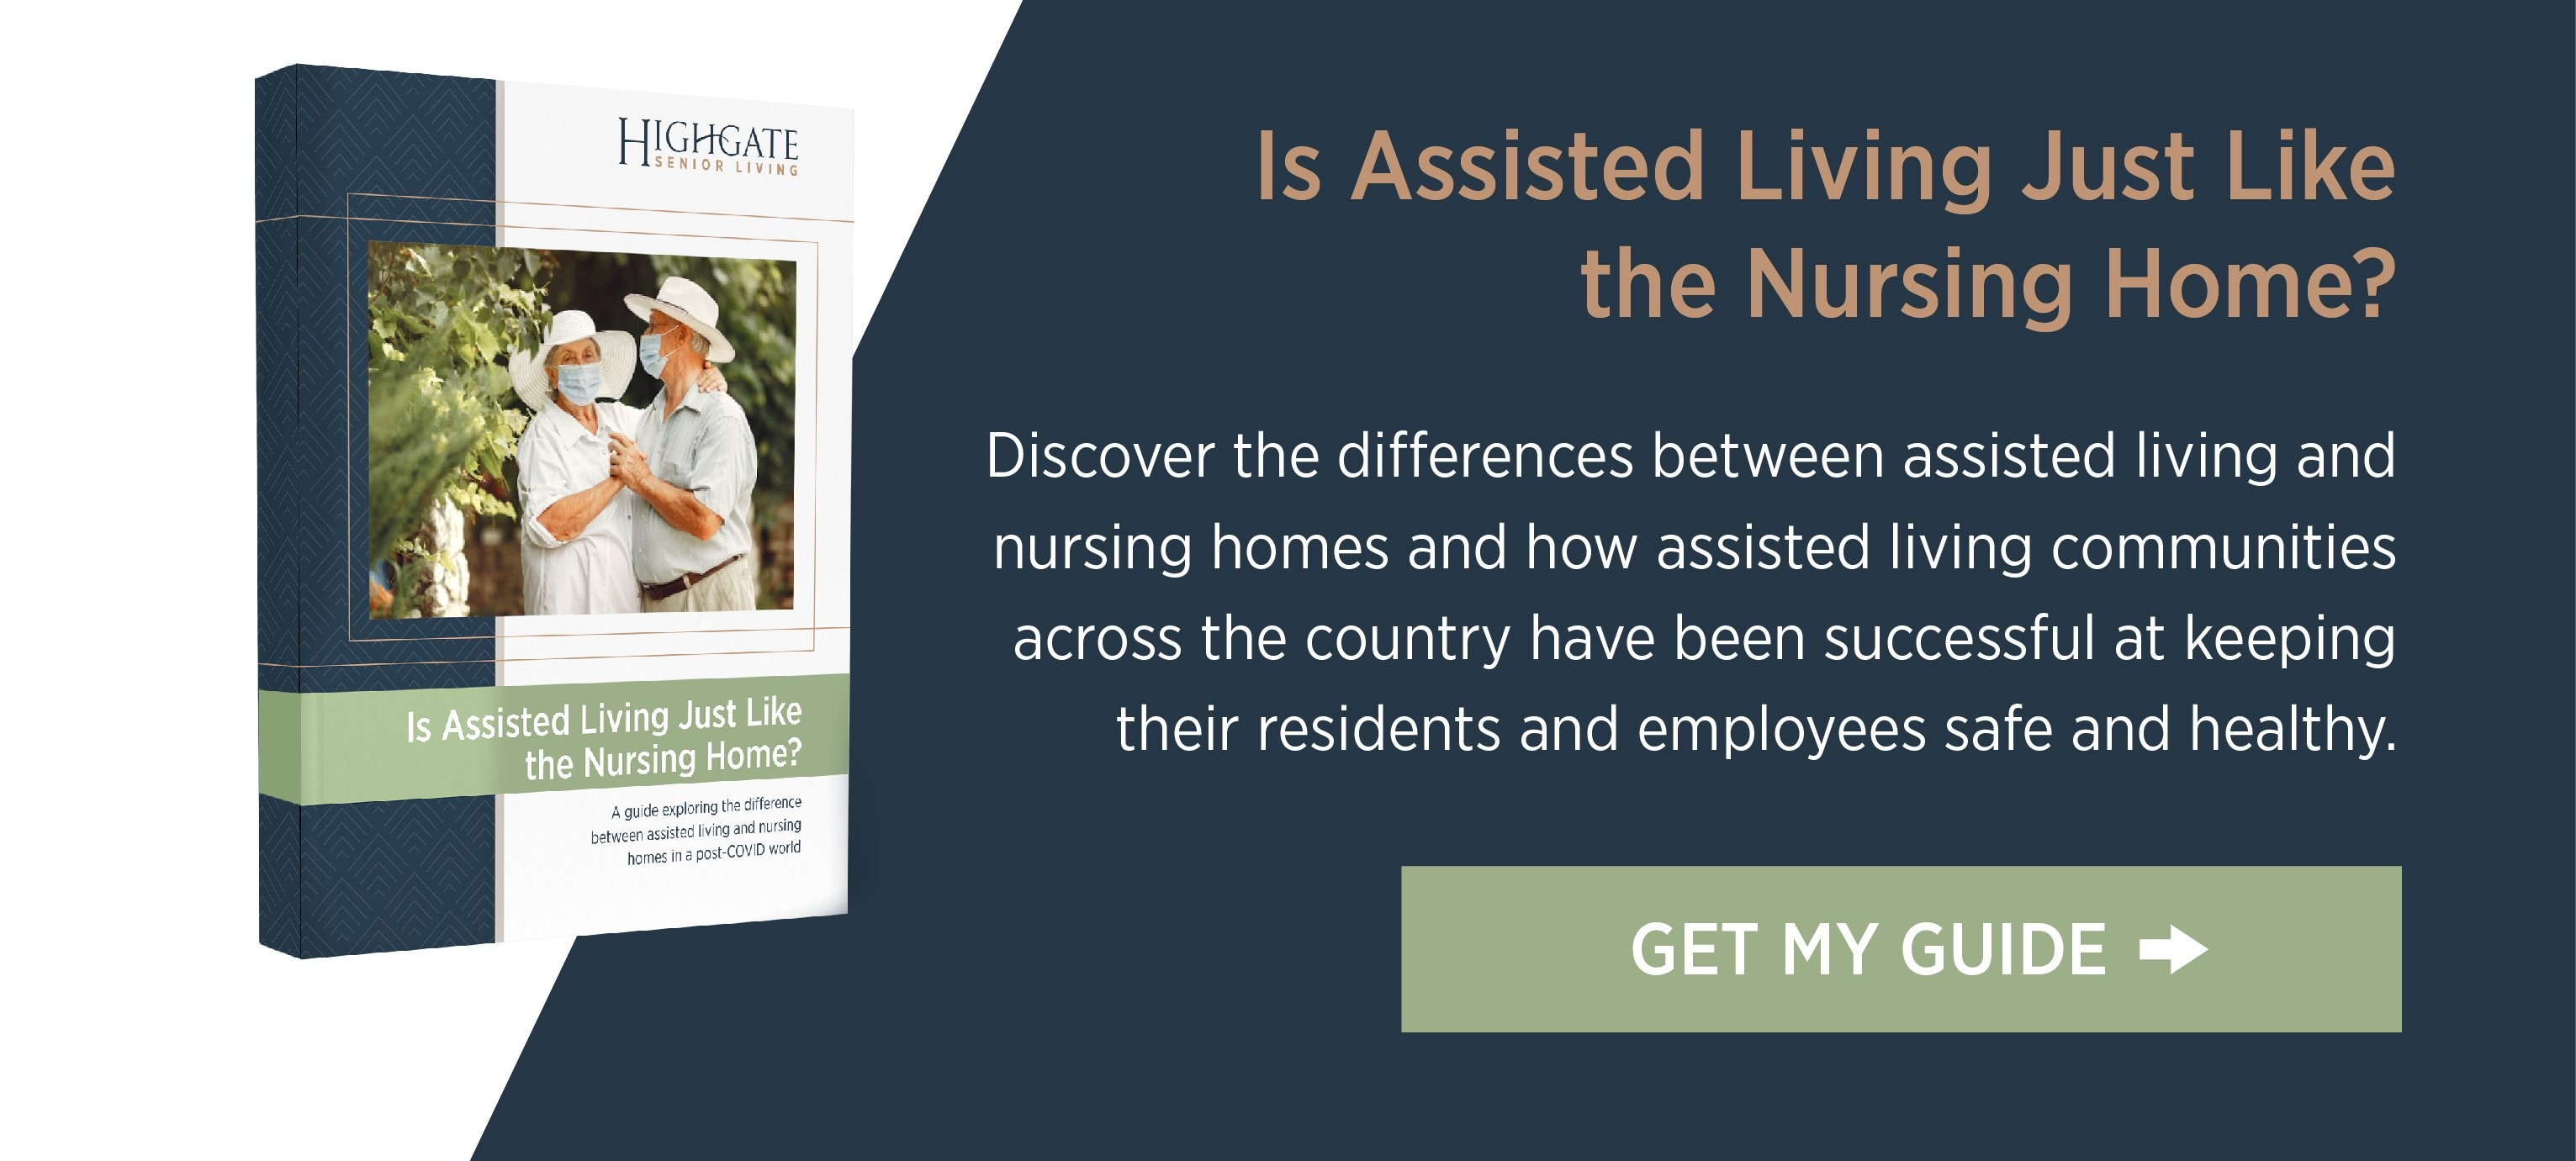 Is Assisted Living Just Like the Nursing Home?